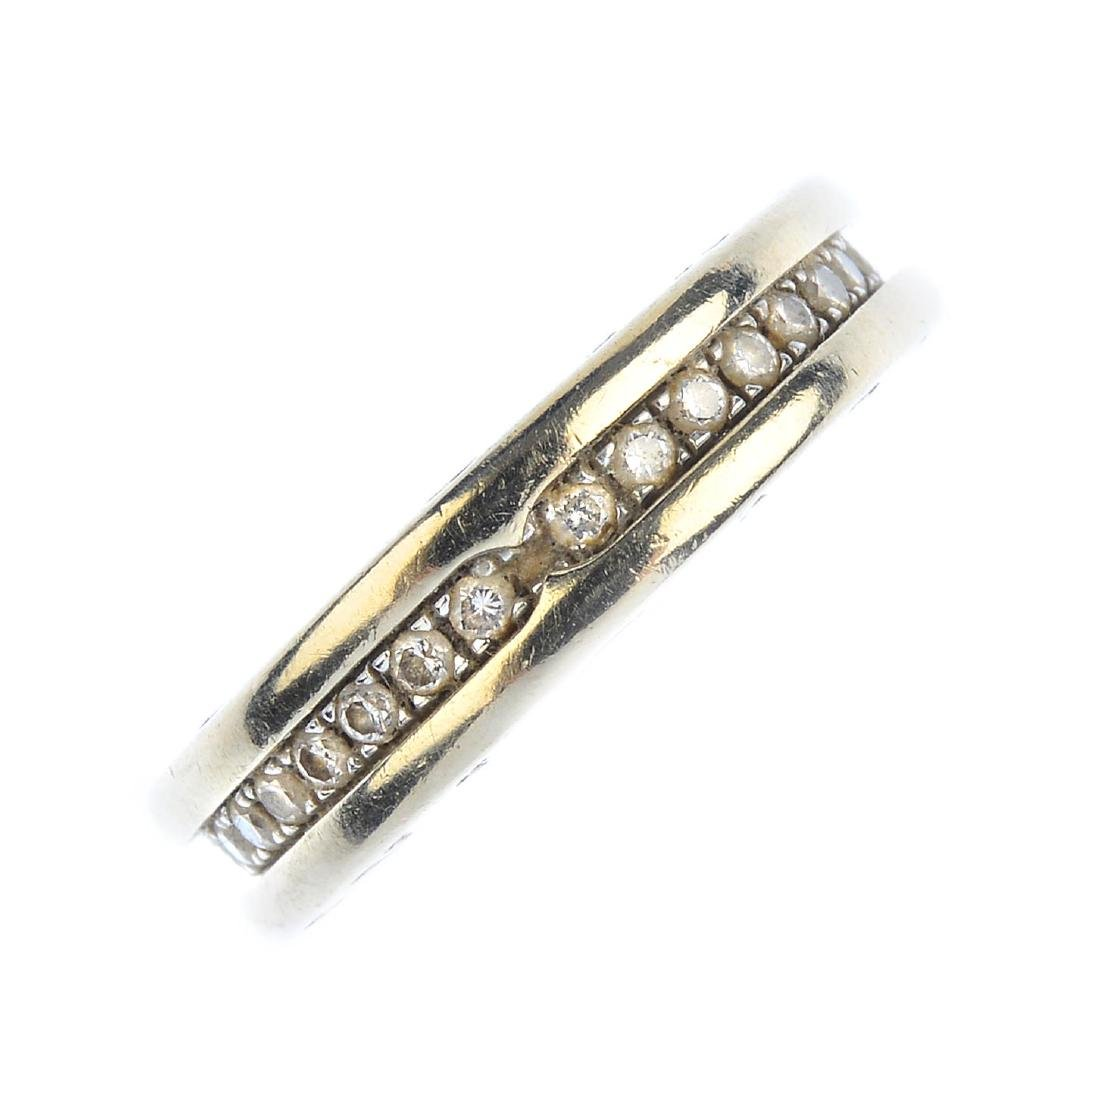 BULGARI - an 18ct gold diamond 'B.Zero1' ring. The